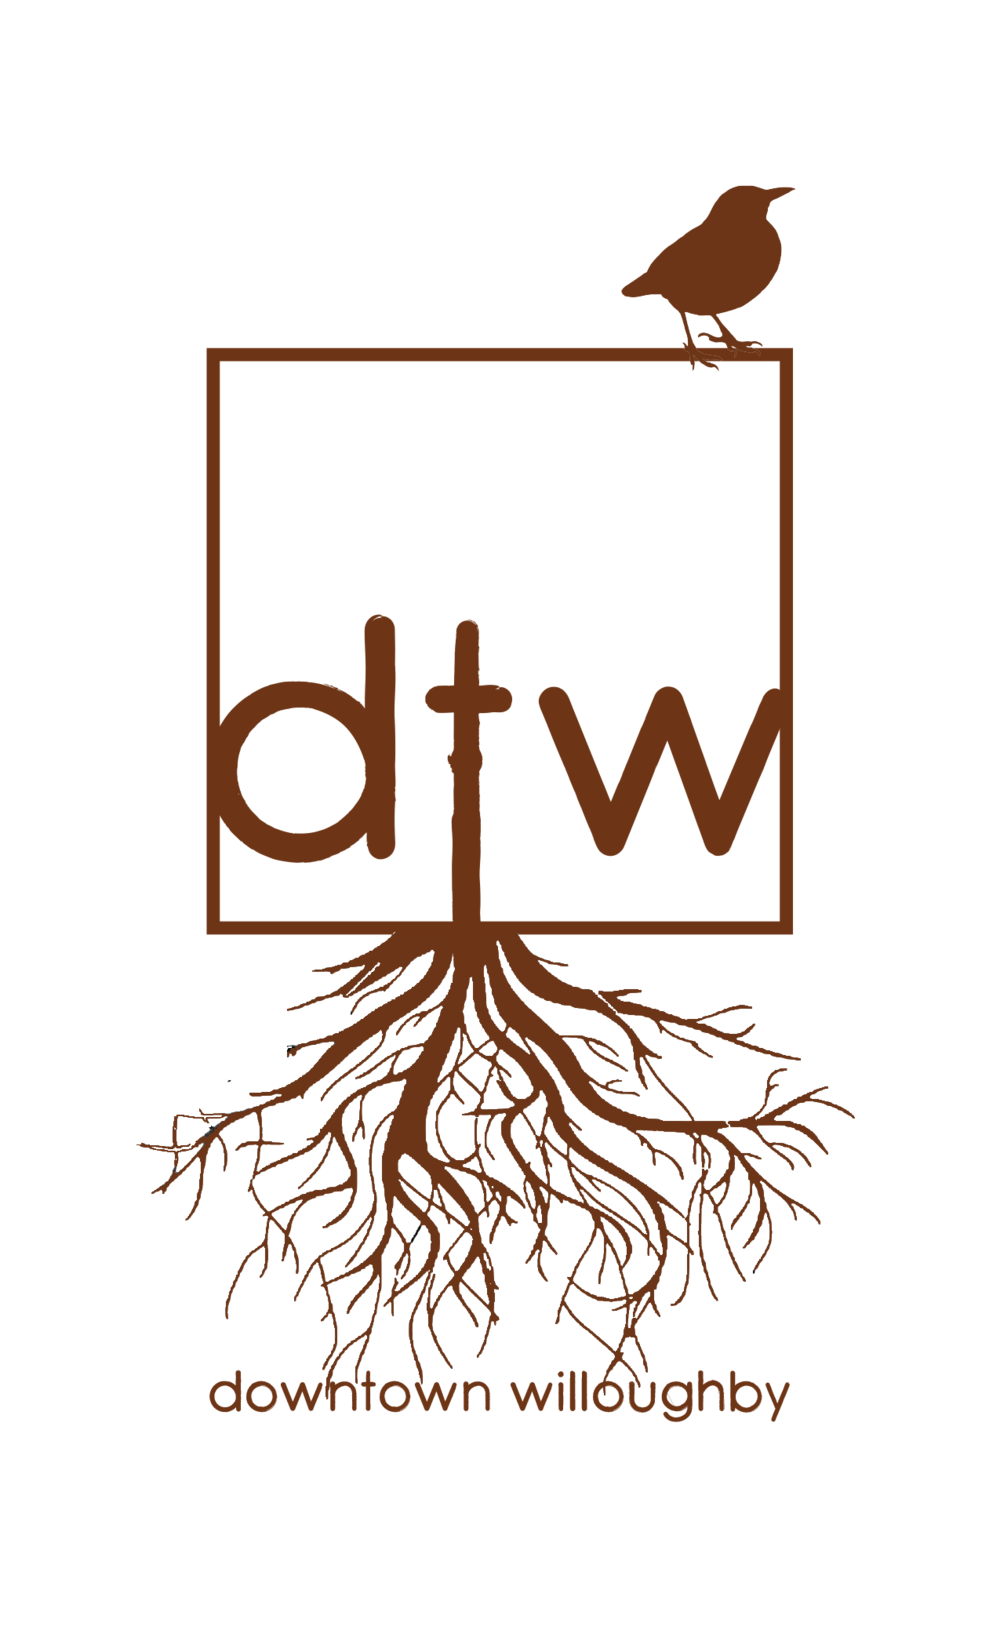 DTW_logo.png